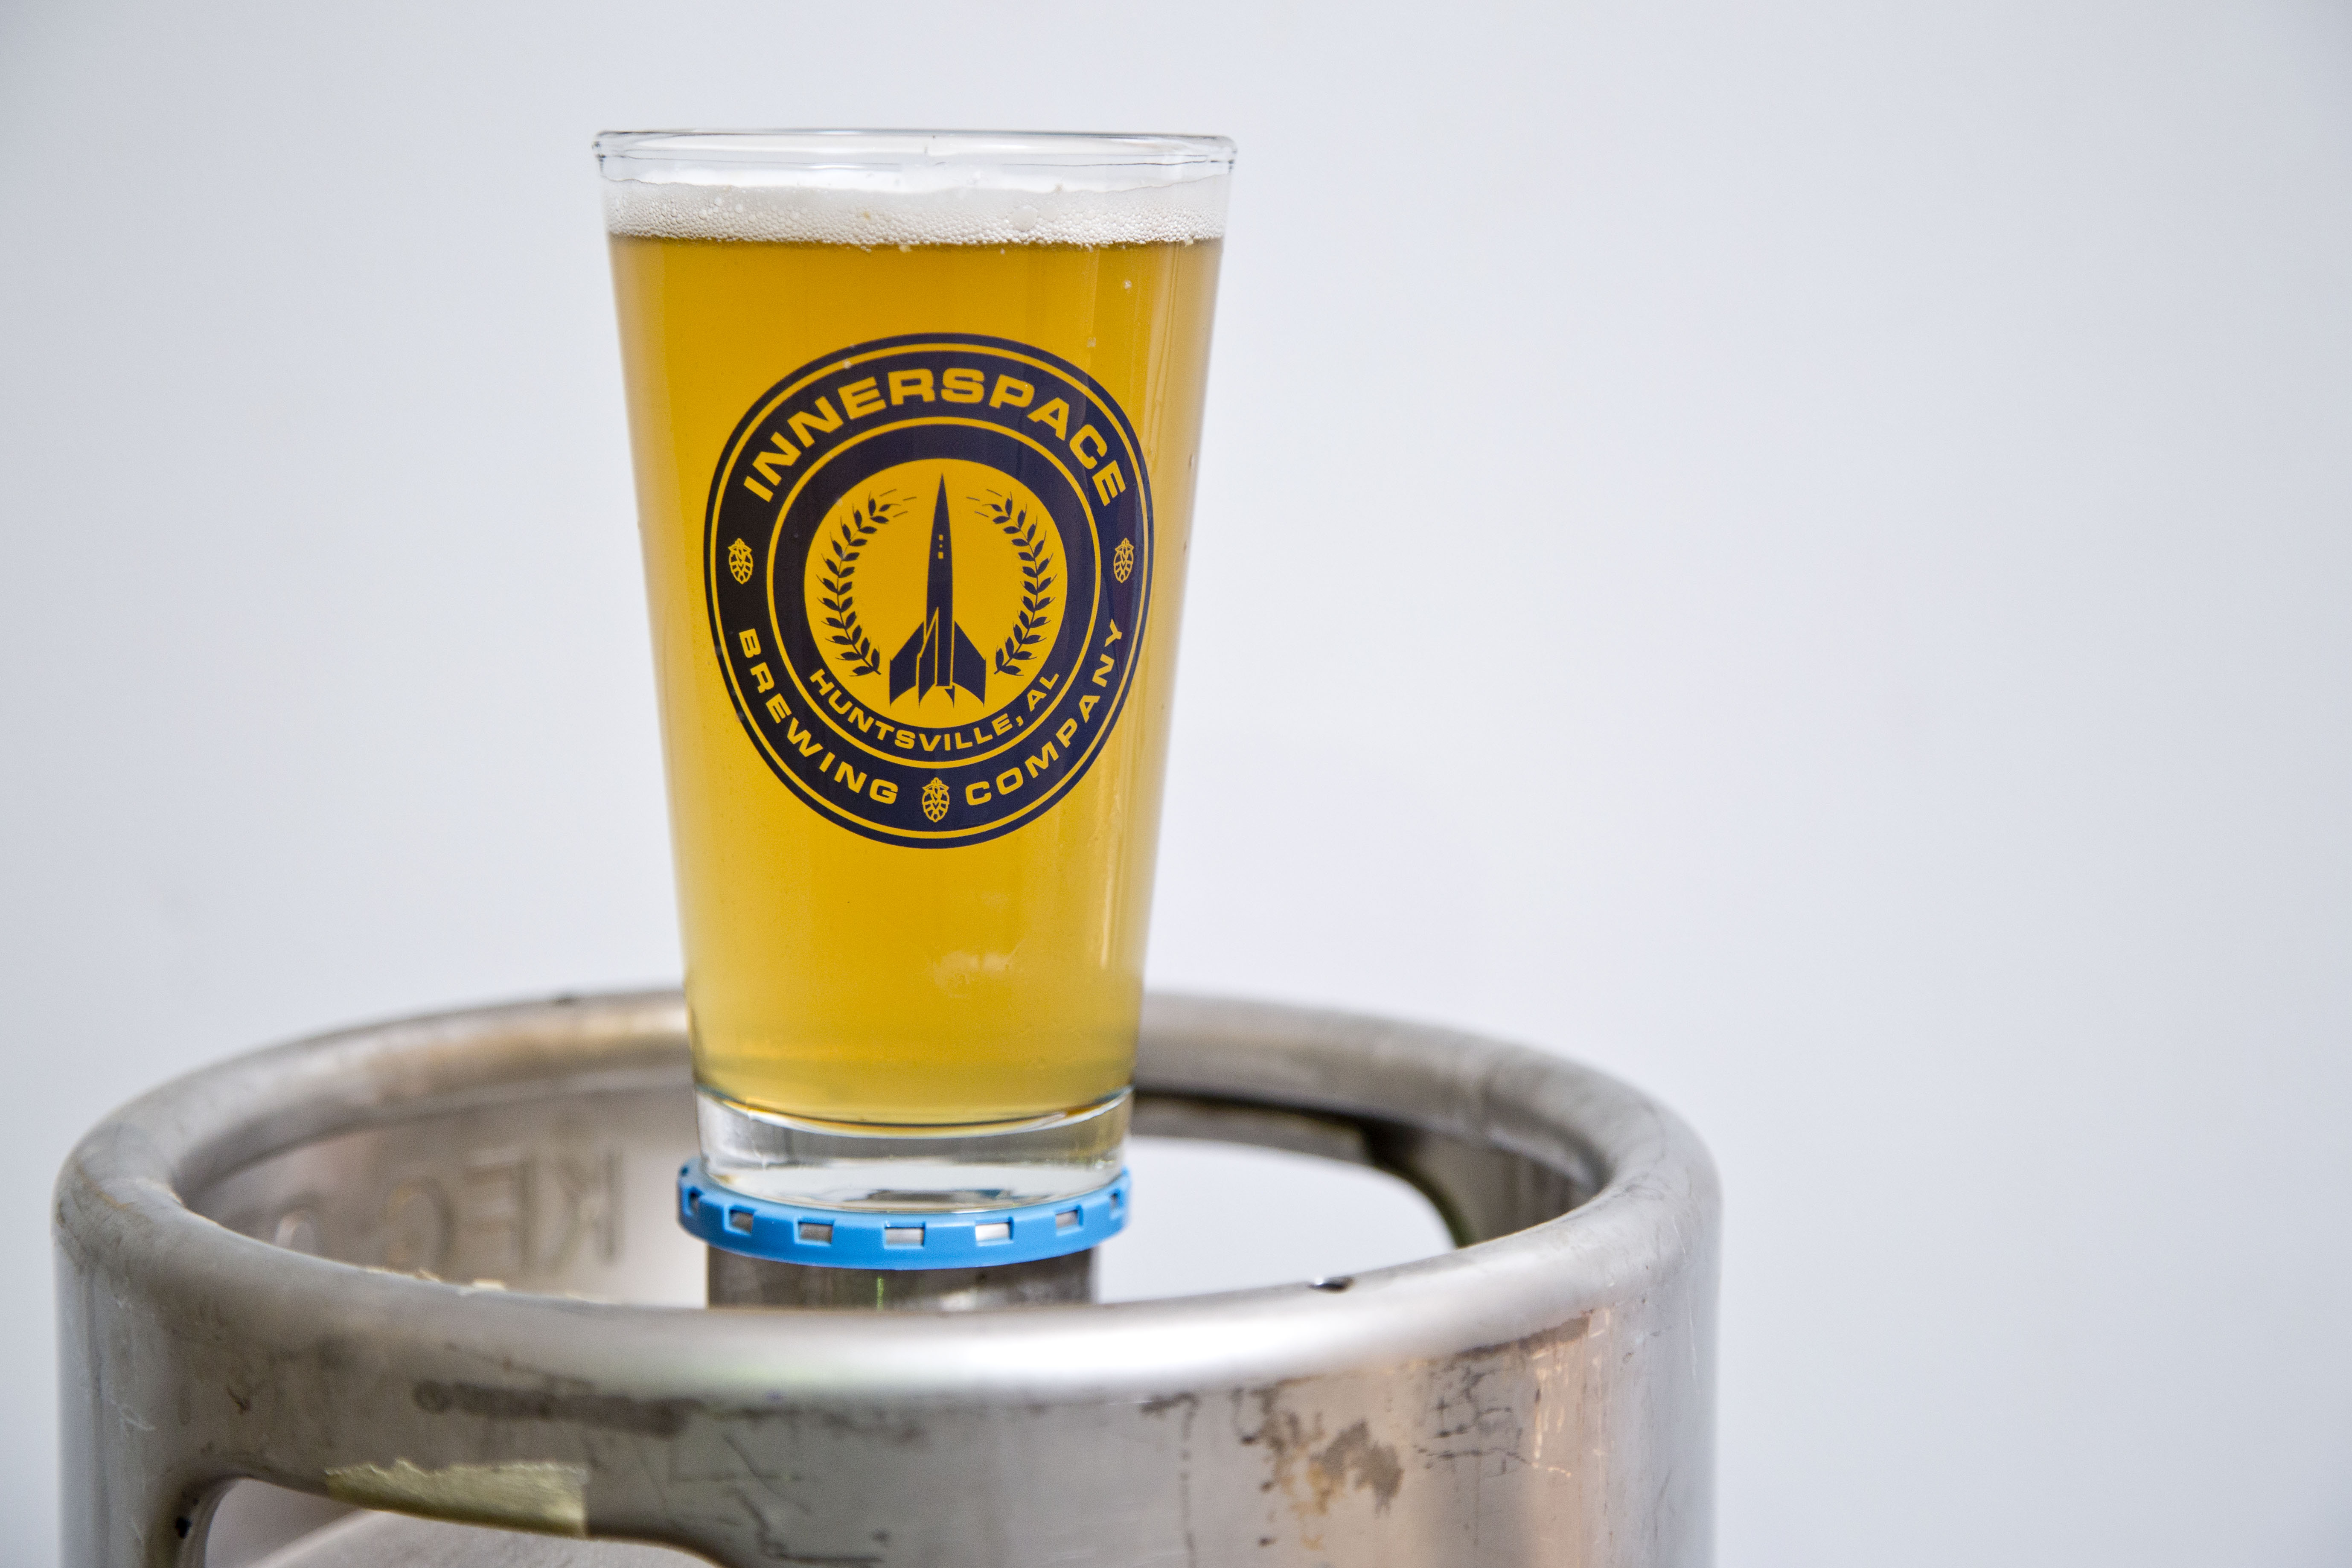 InnerSpace Brewing Company